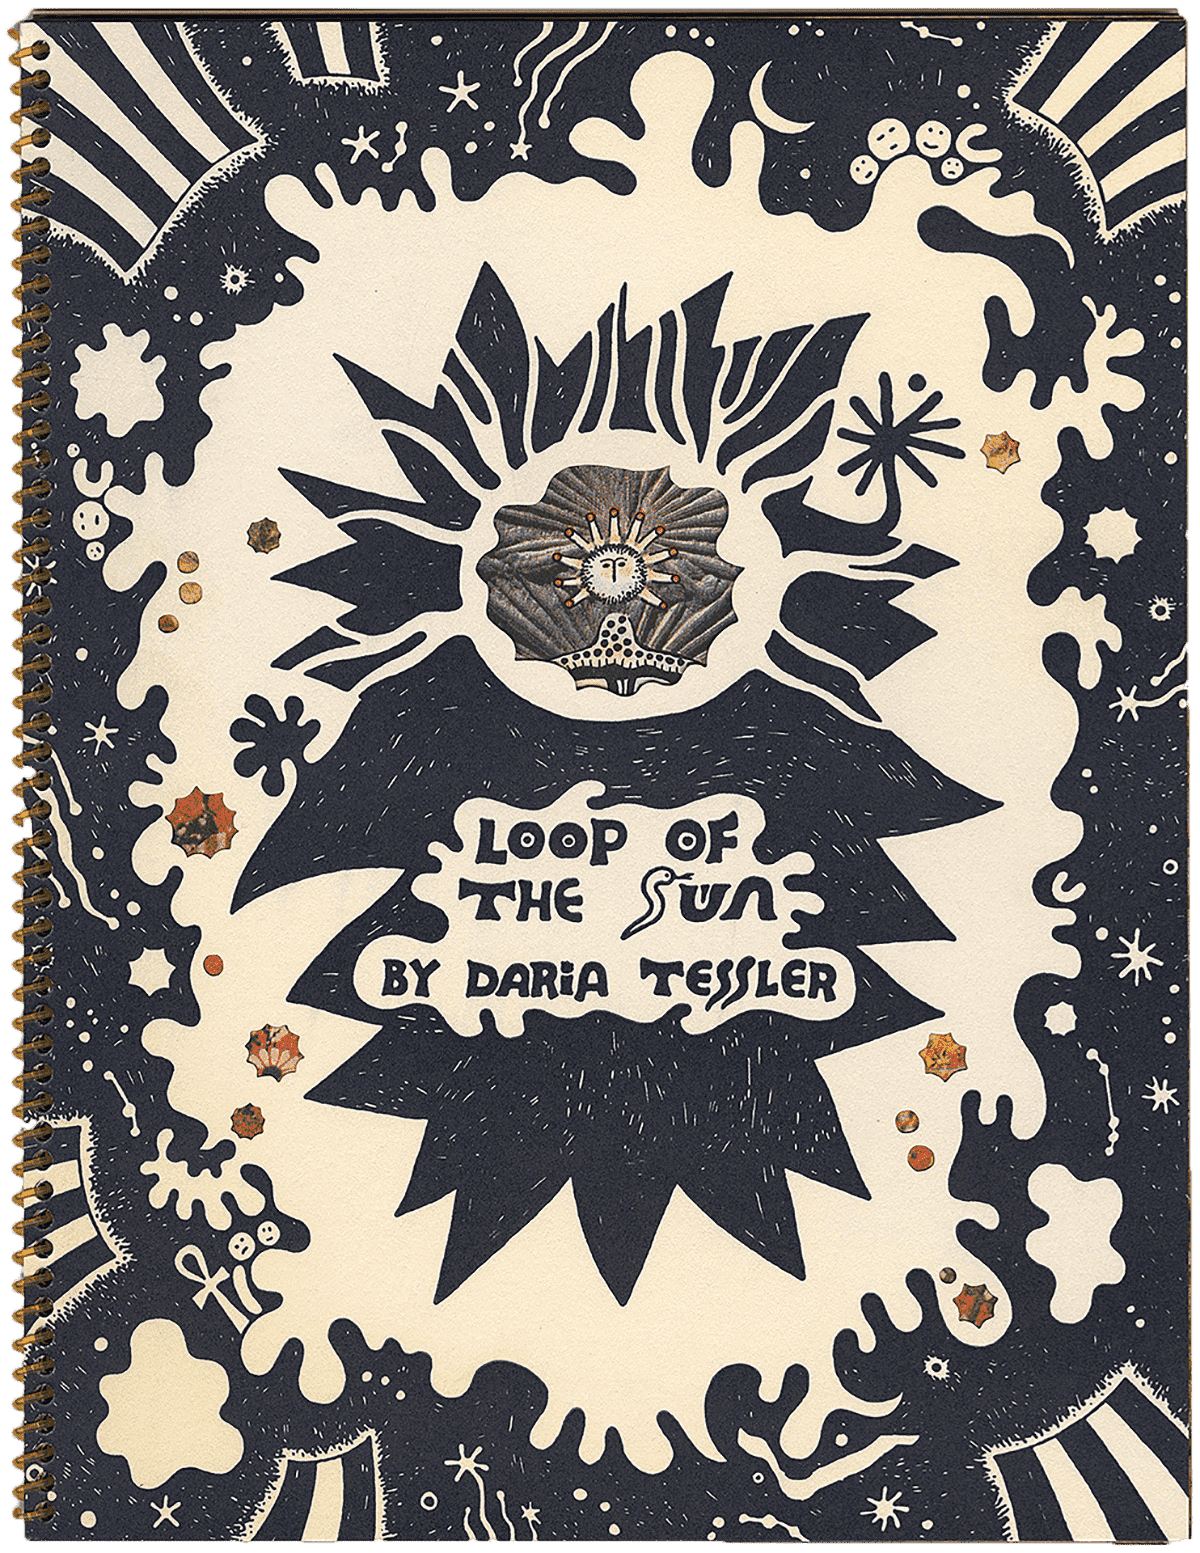 Loop of the Sun, a zine by Daria Tessler published by Perfectly Acceptable Press.